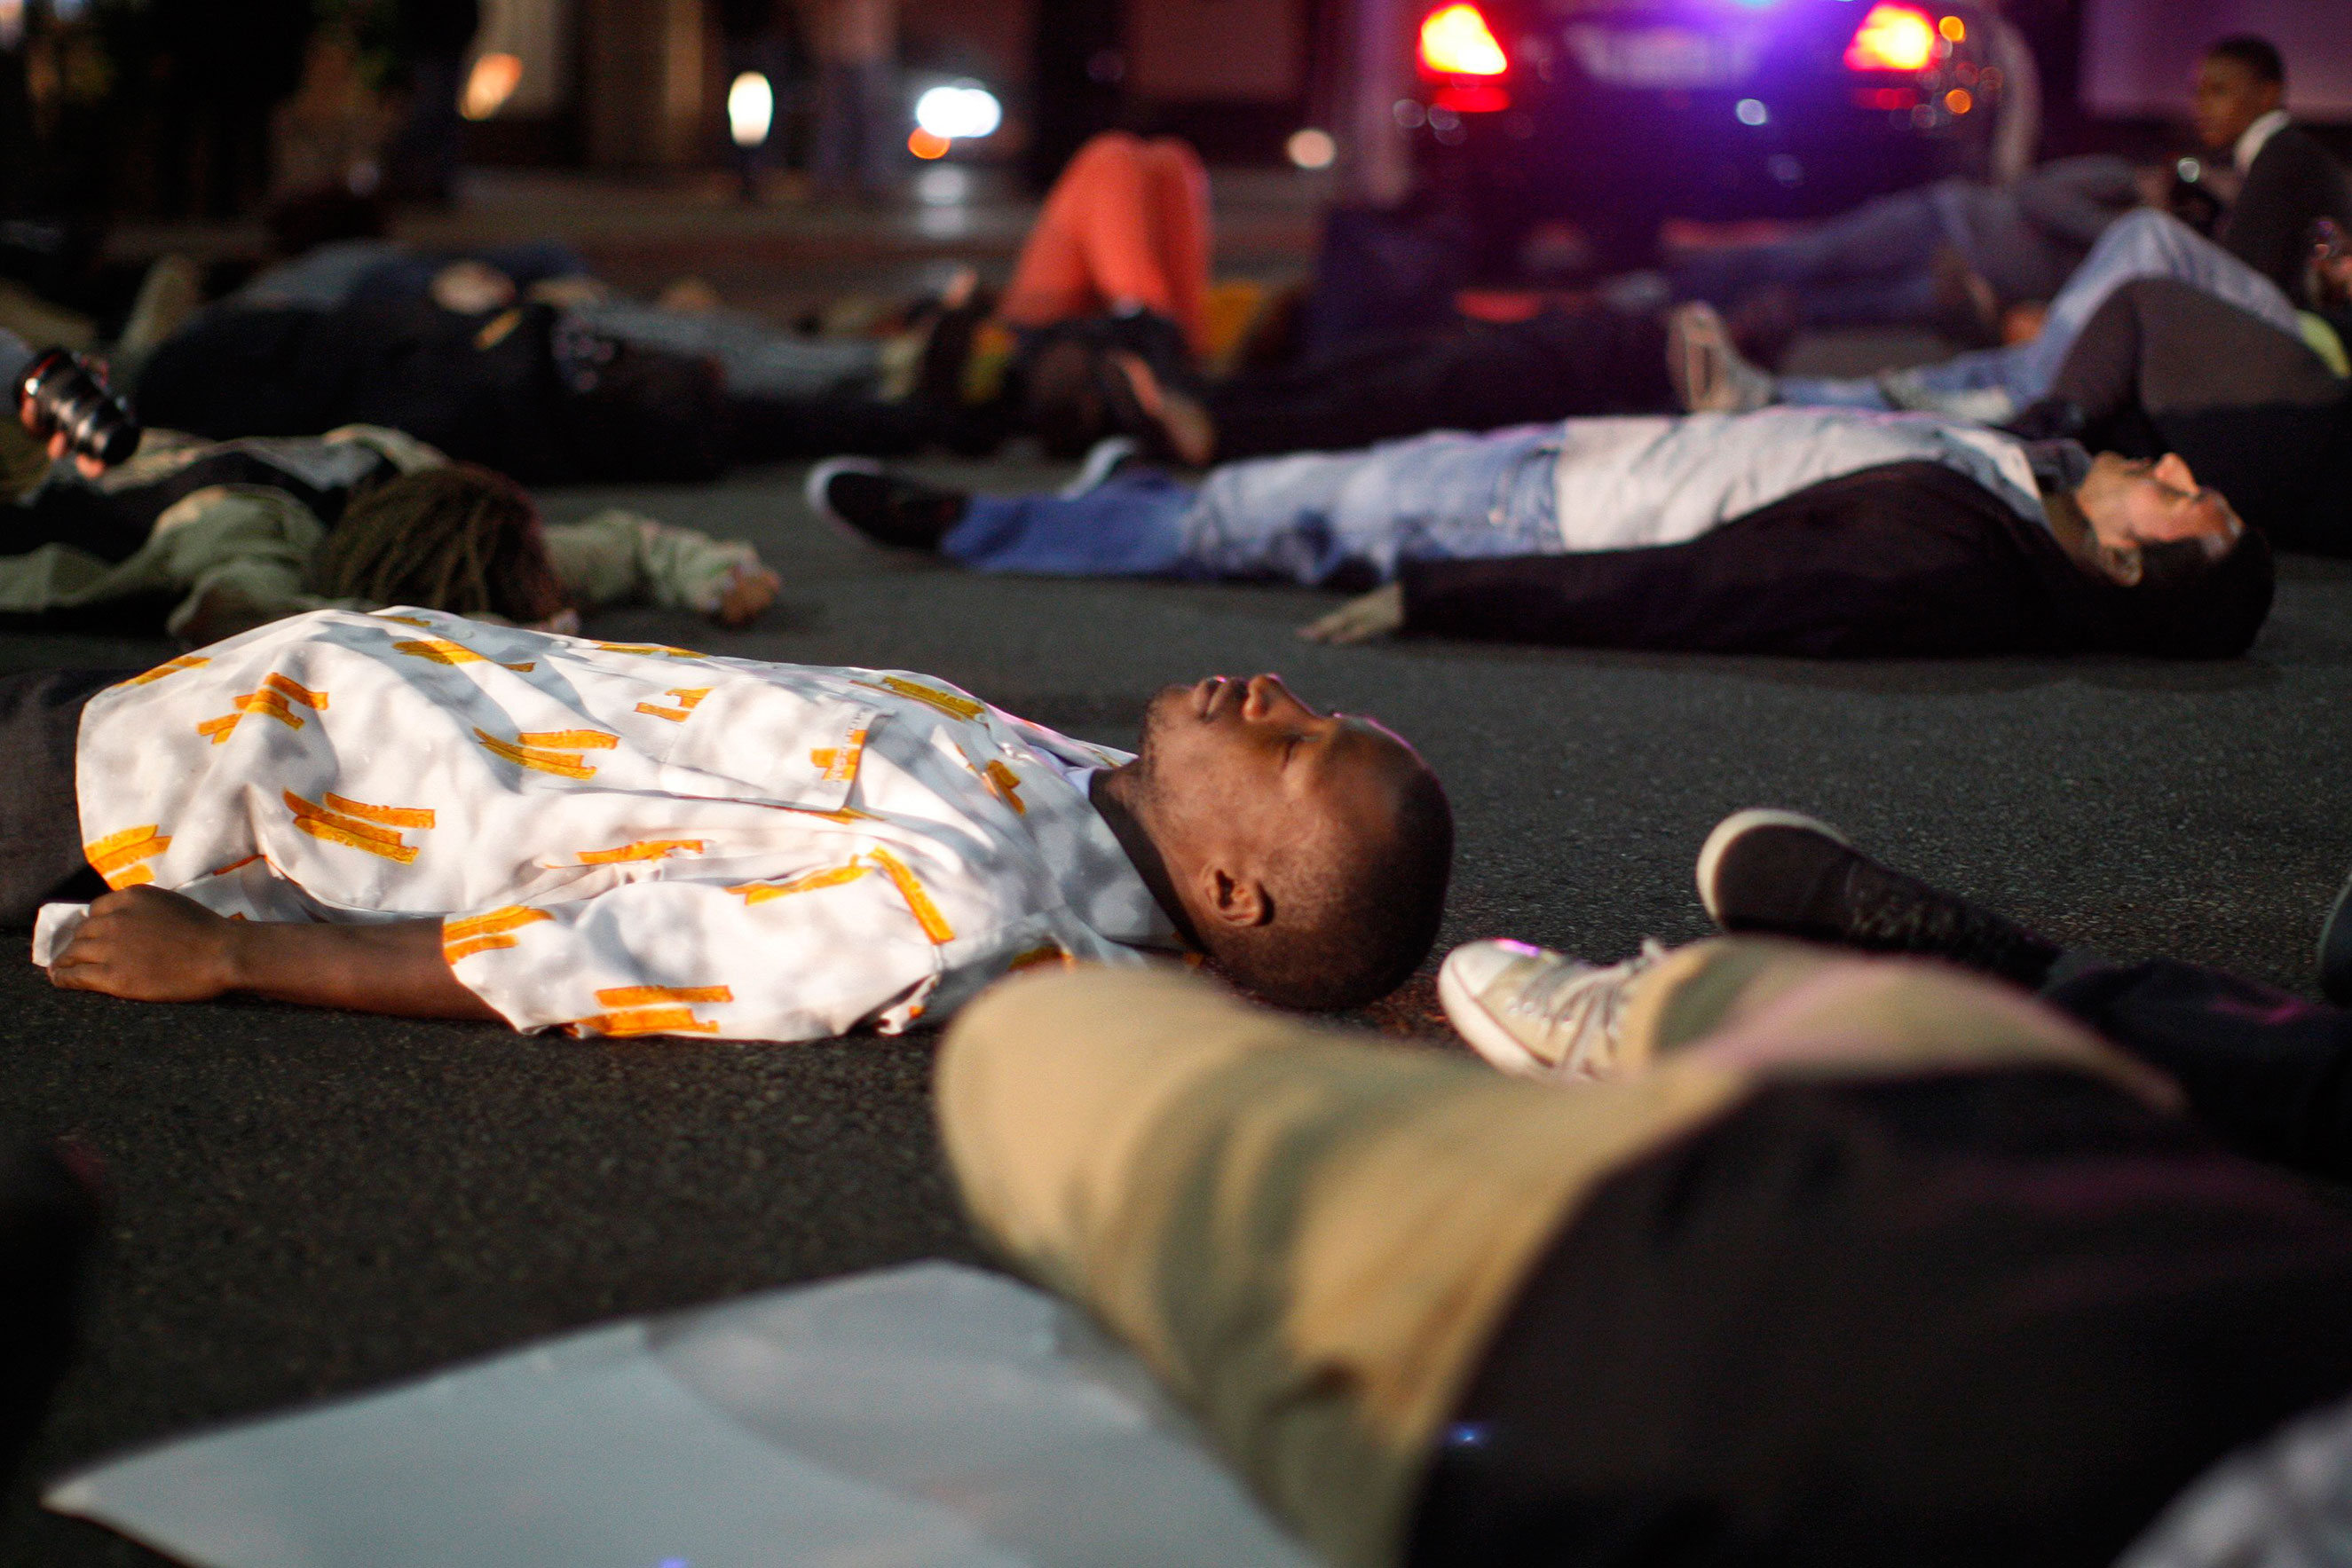 Protesters lay down to block traffic in the intersection of Wilshire Boulevard and Rodeo Dr. in Beverly Hills, Calif., on Nov. 24, 2014.